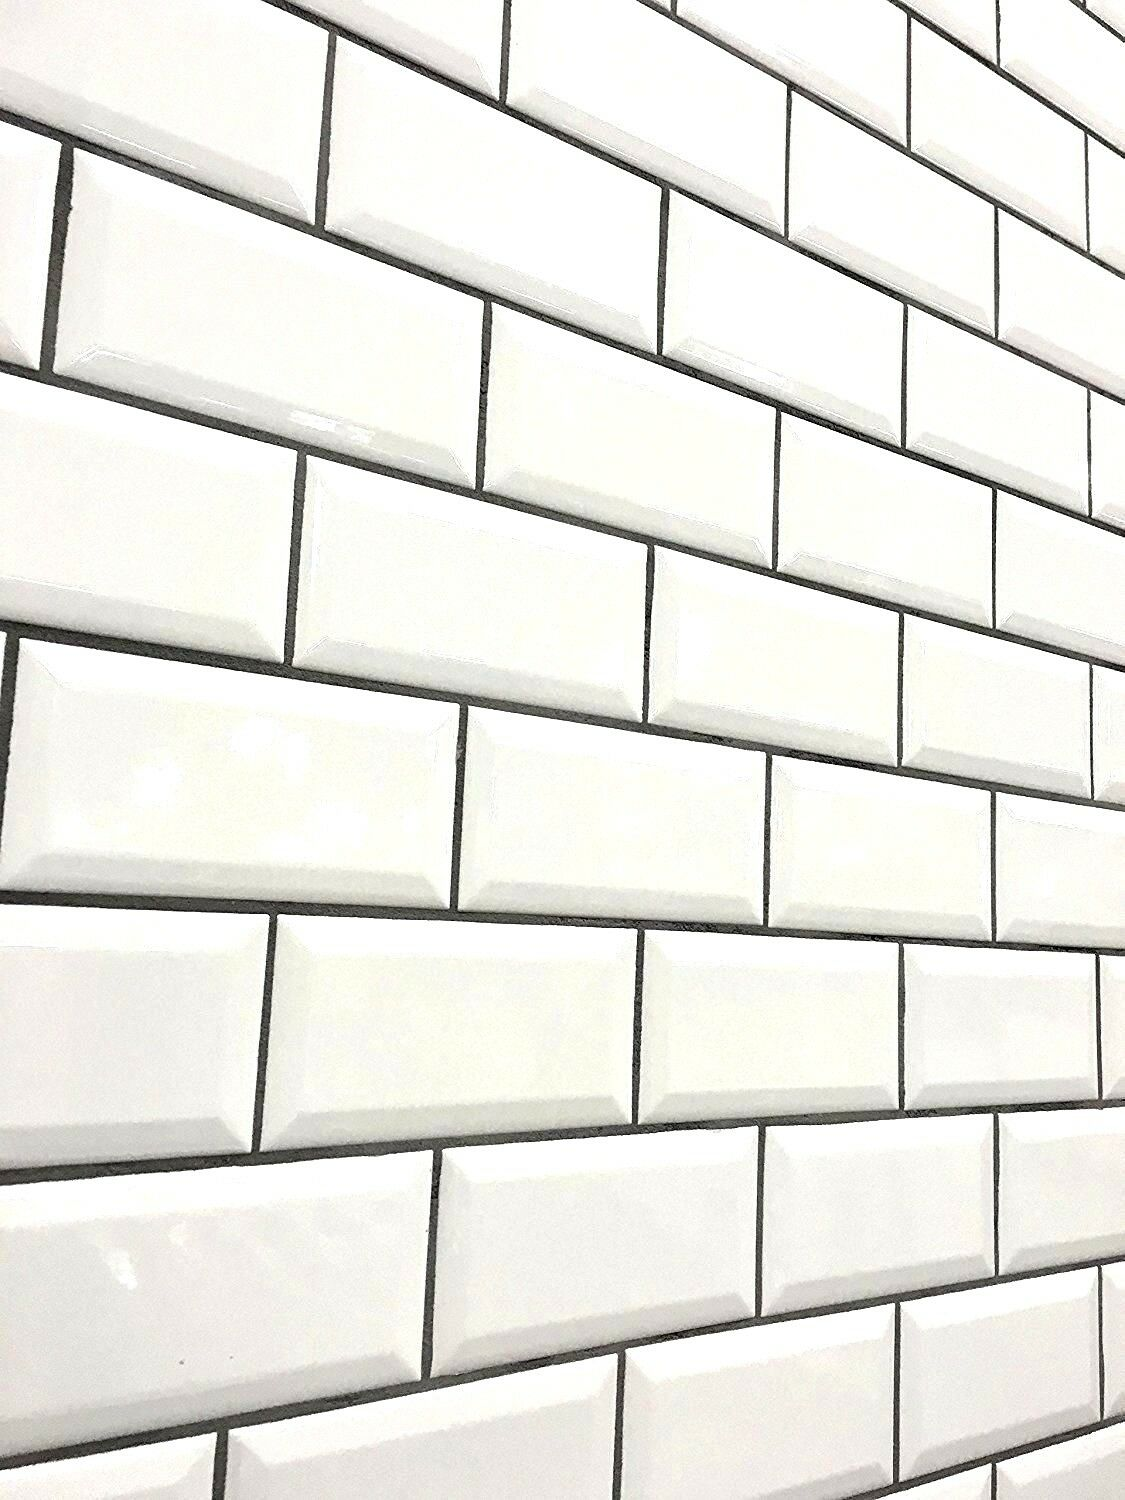 White 3x6 Beveled Shiny Glossy Ceramic Subway Tile Backsplash Wall